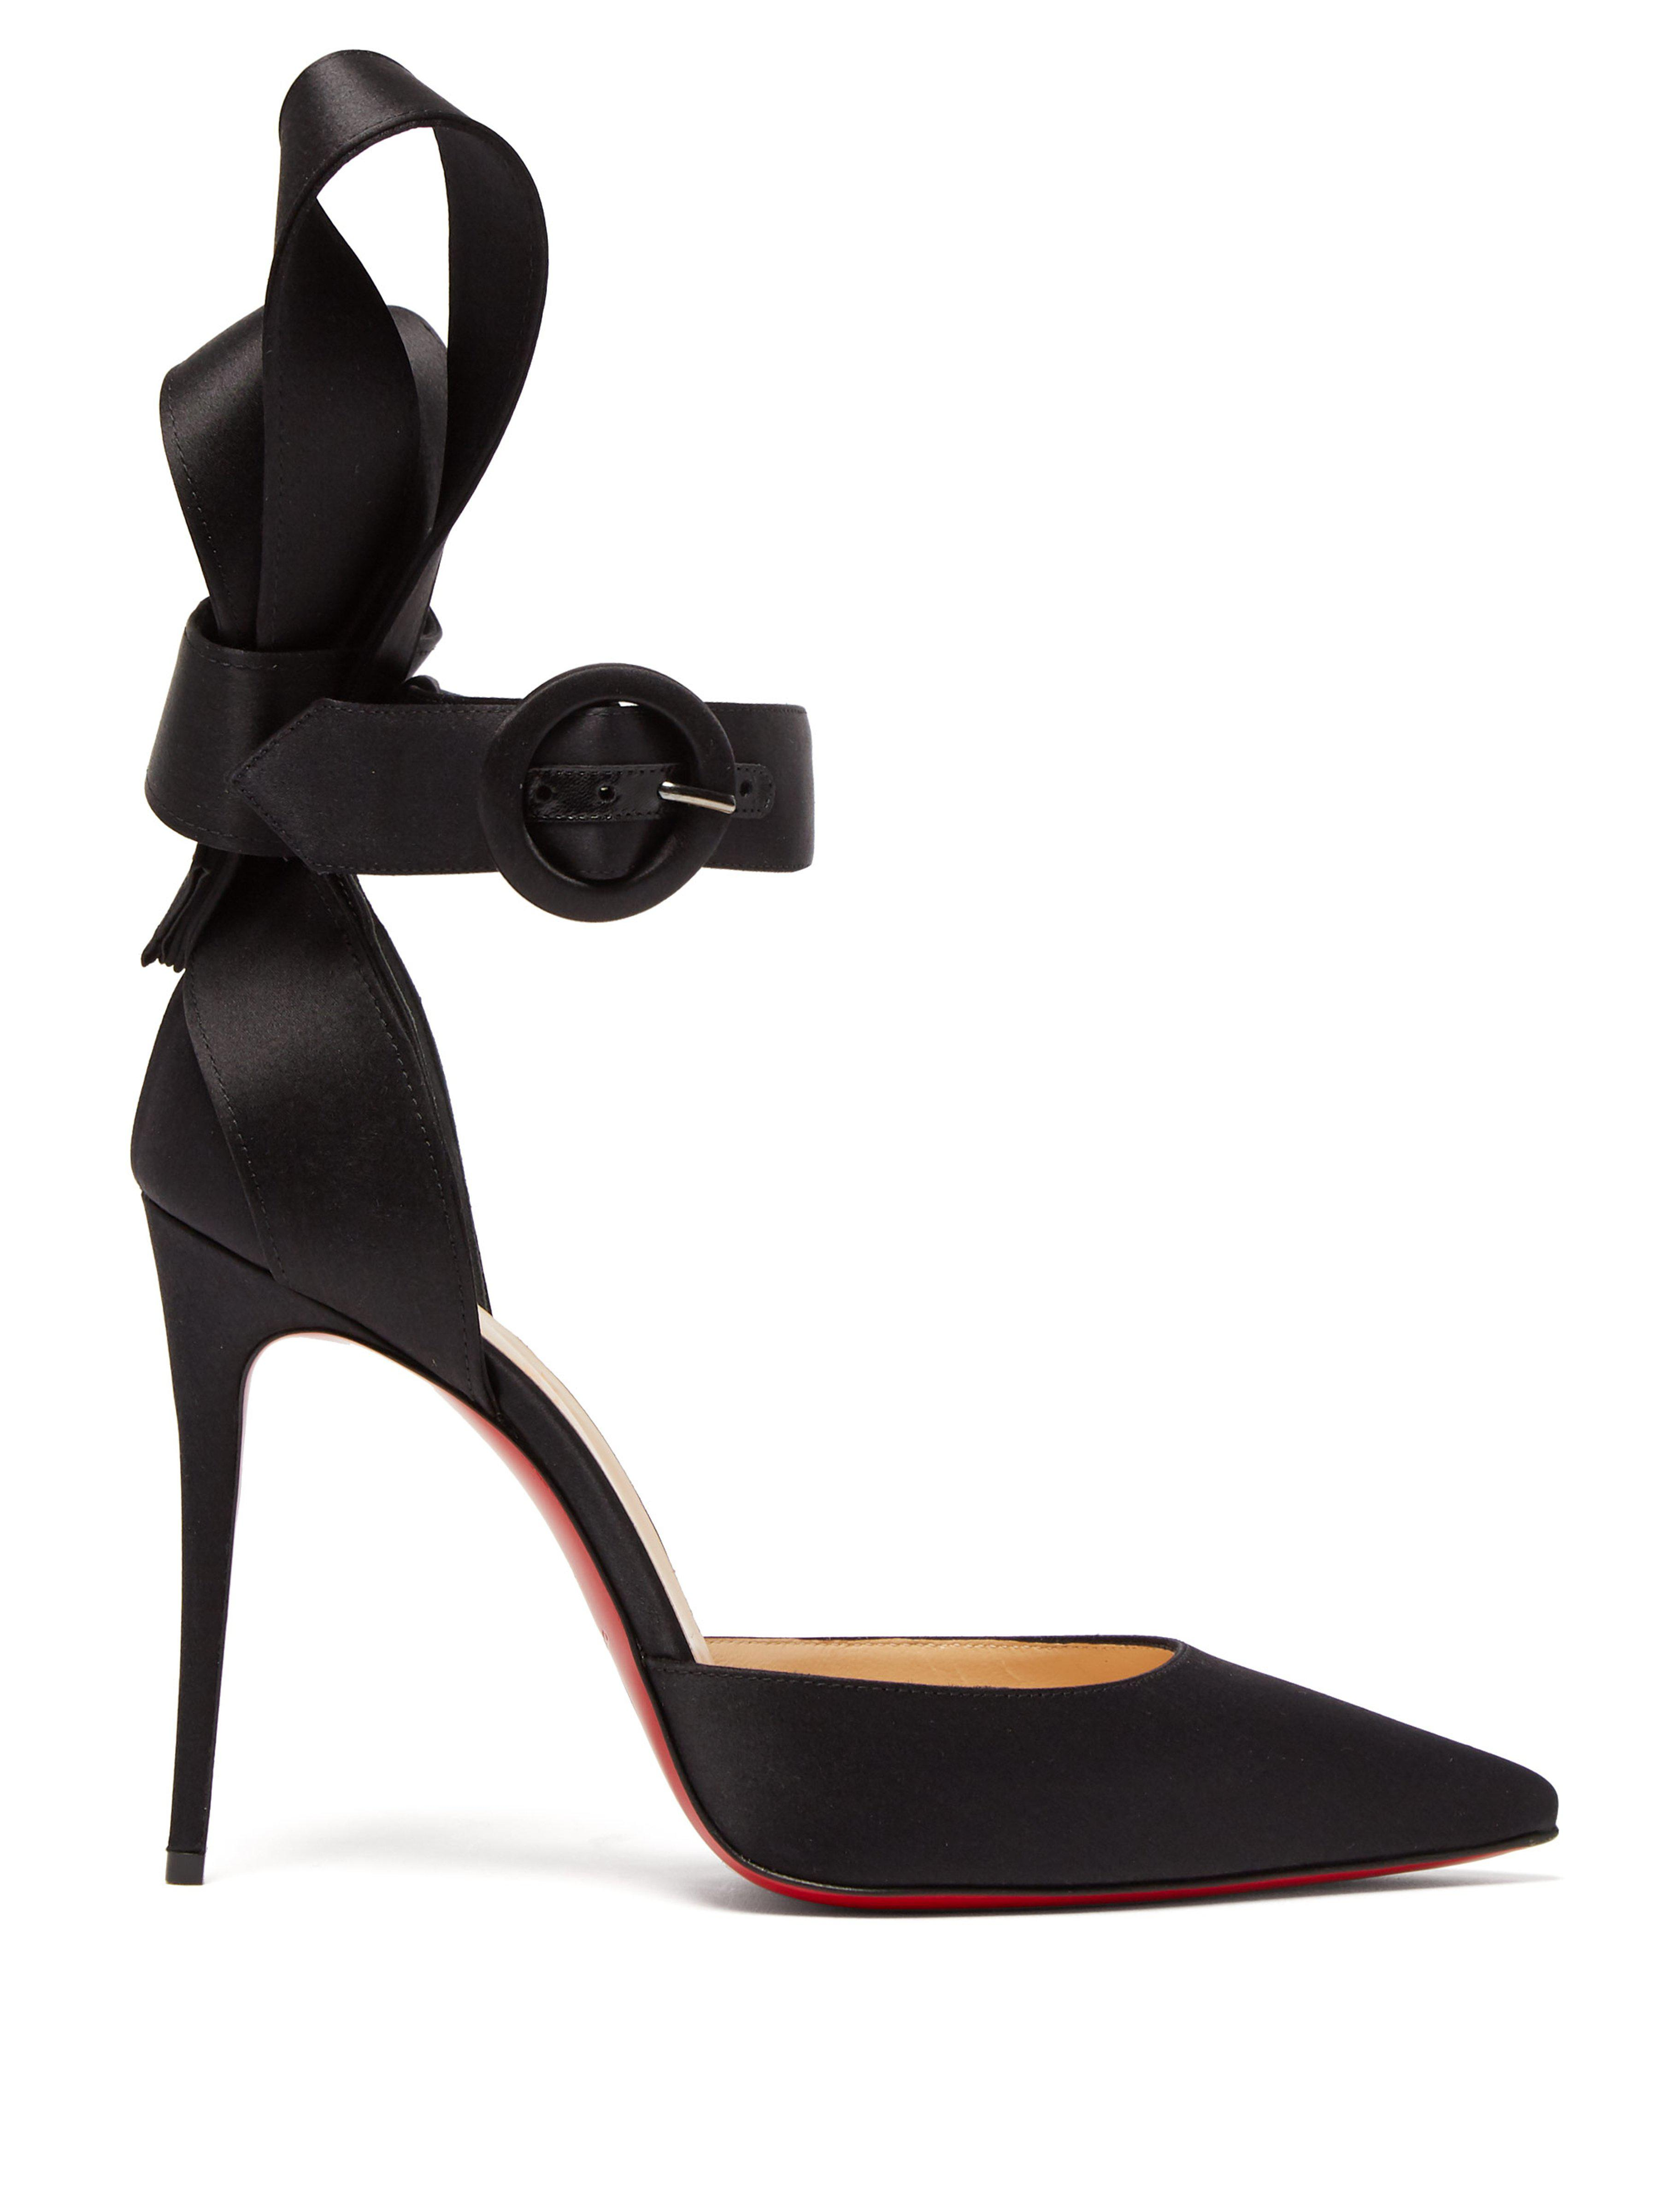 c1f690edbc2 Christian Louboutin Raissa 100 Bow Back Satin Pumps in Black - Lyst